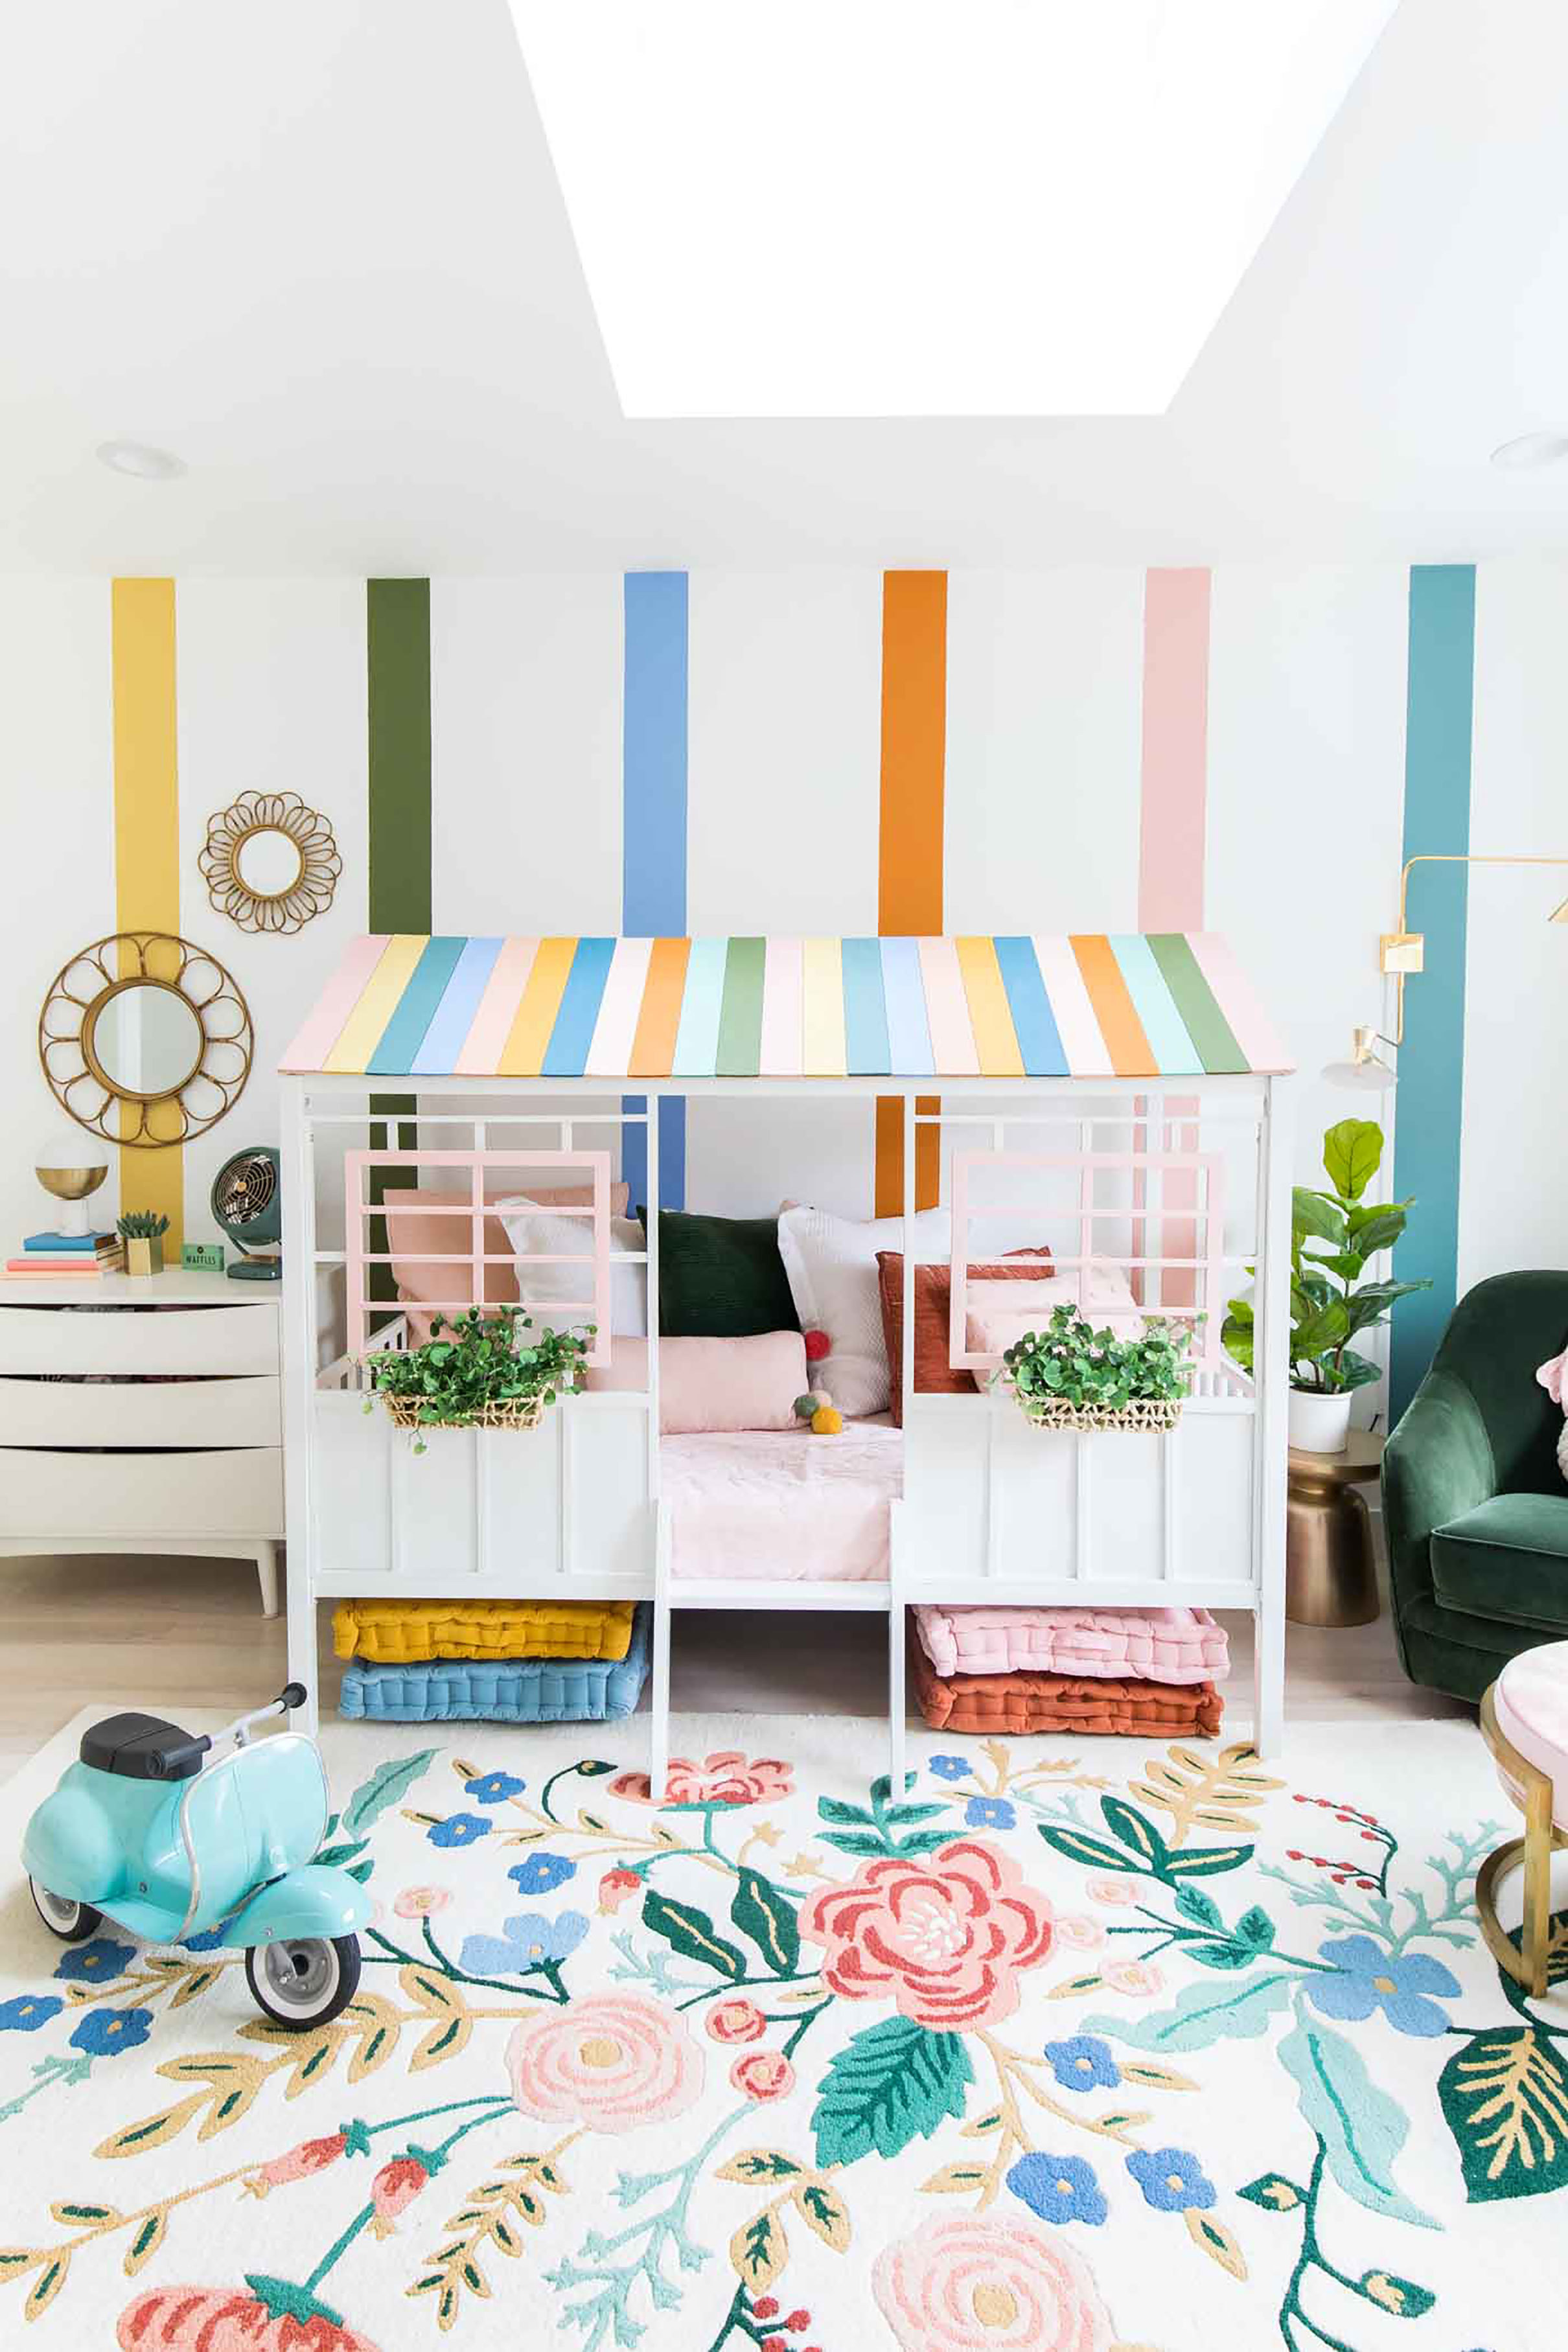 Pastel colored children's room with a skylight and playhouse bed